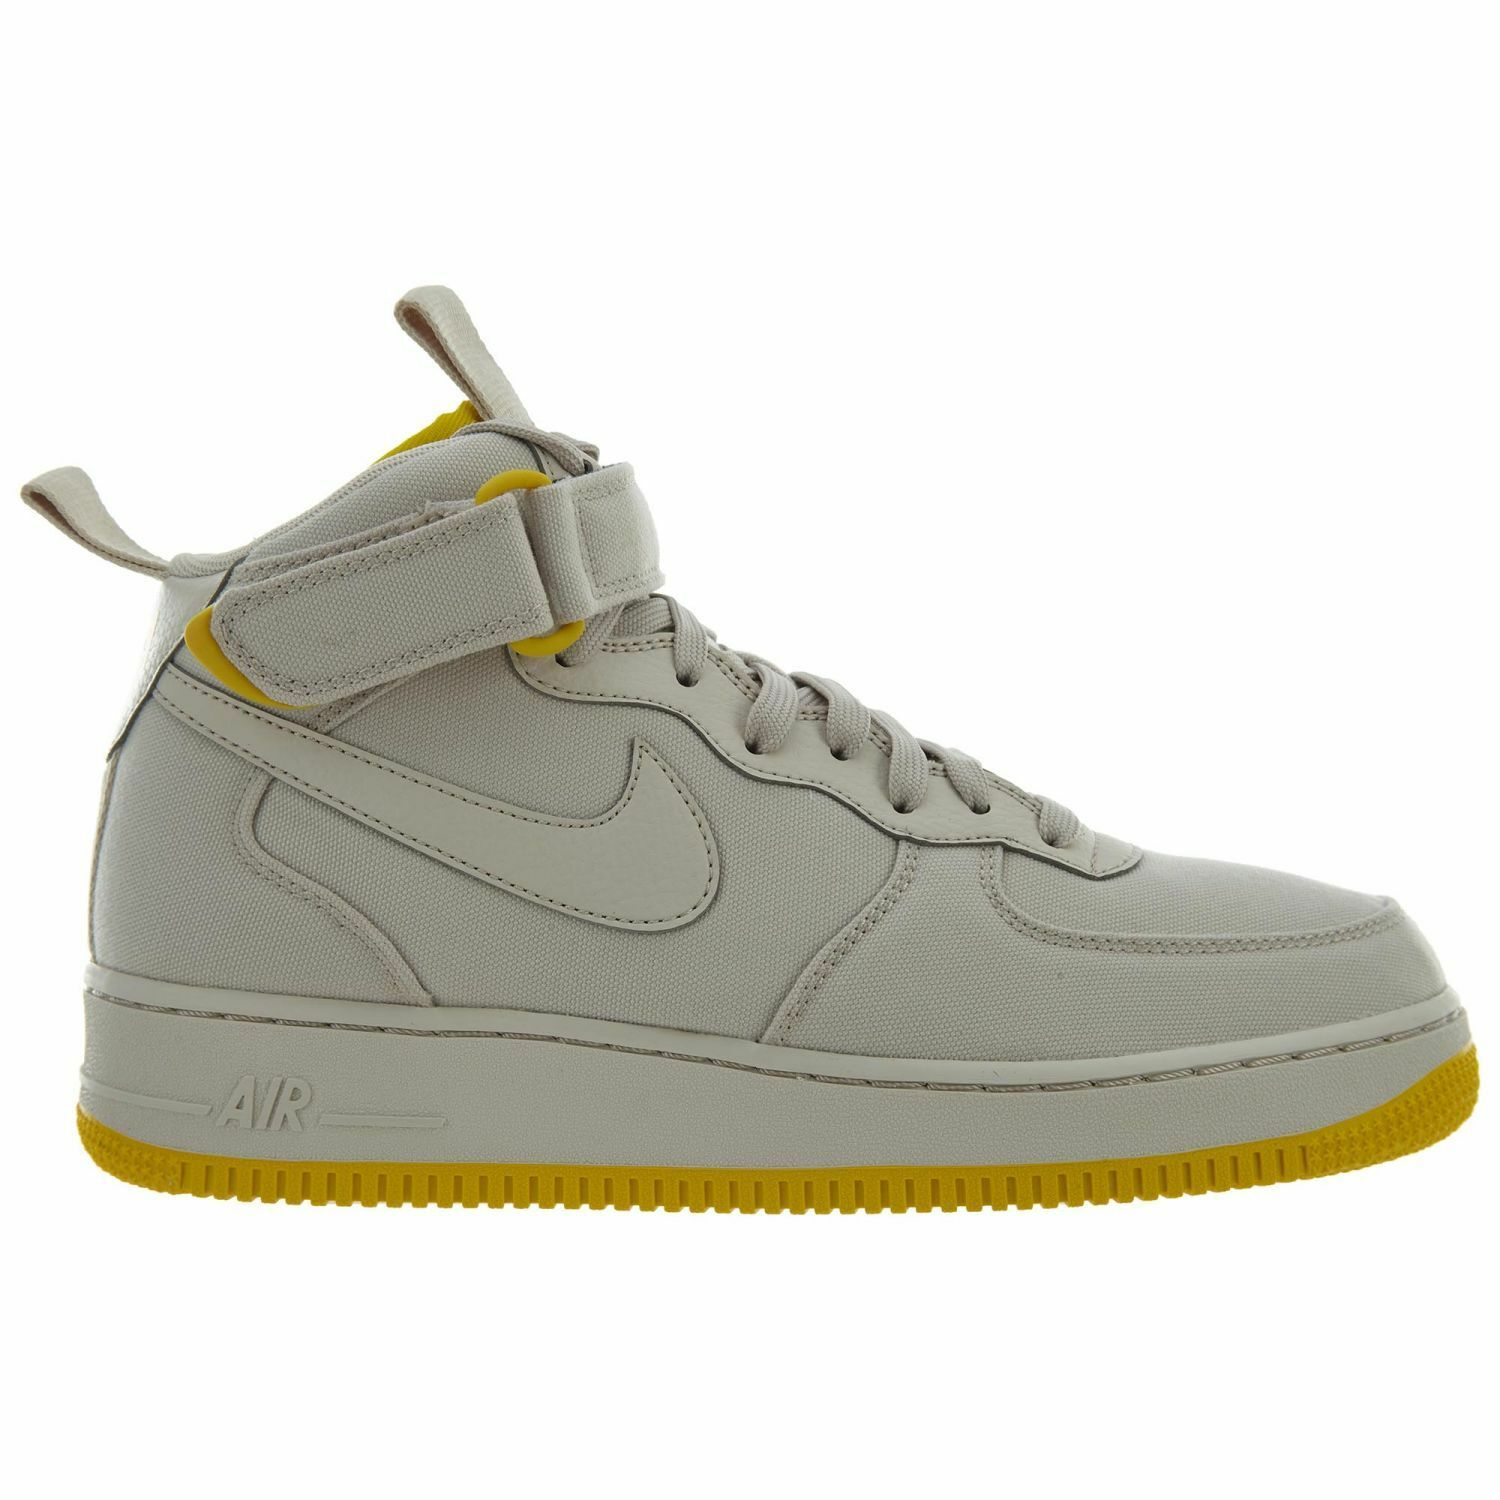 Nike Air Force 1 Mid Canvas Mens AH6770-002 Desert Sand Sulfur Shoes Comfortable Cheap women's shoes women's shoes